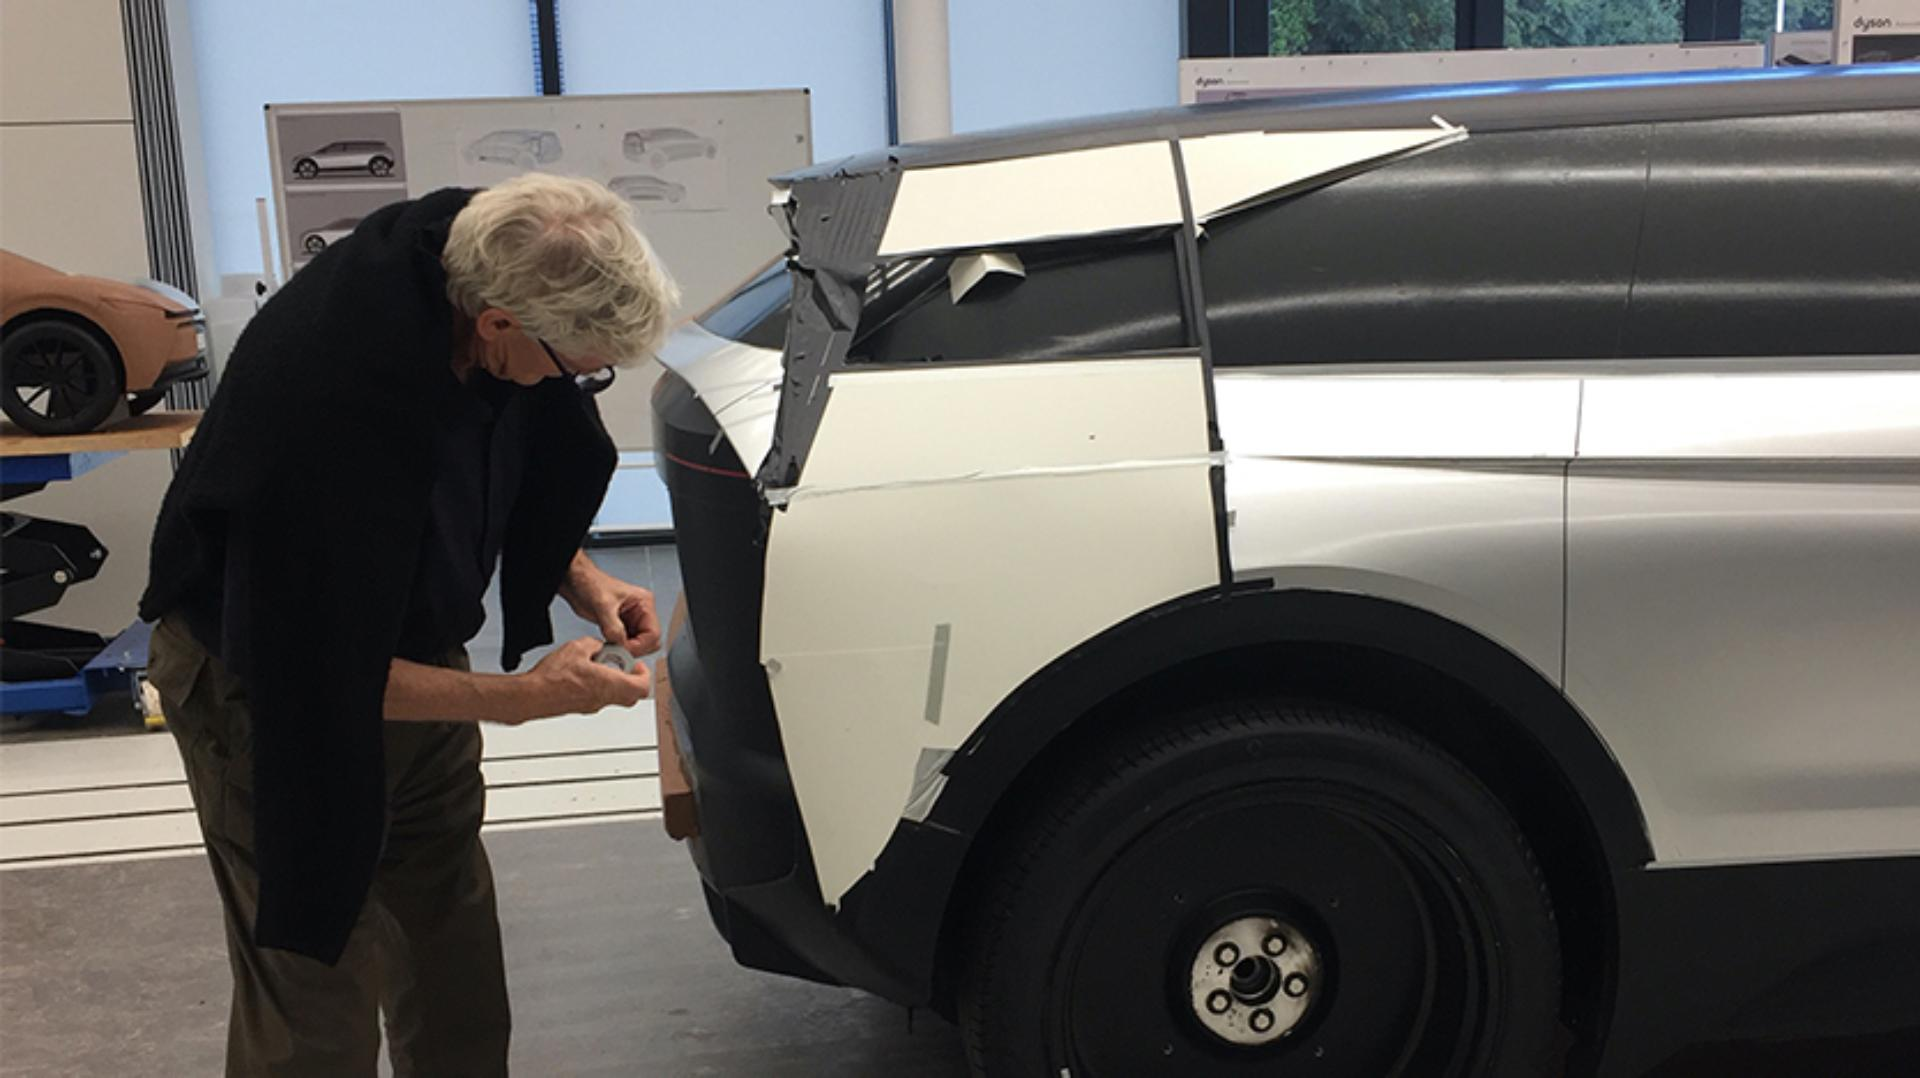 James Dyson working hands-on with the car project